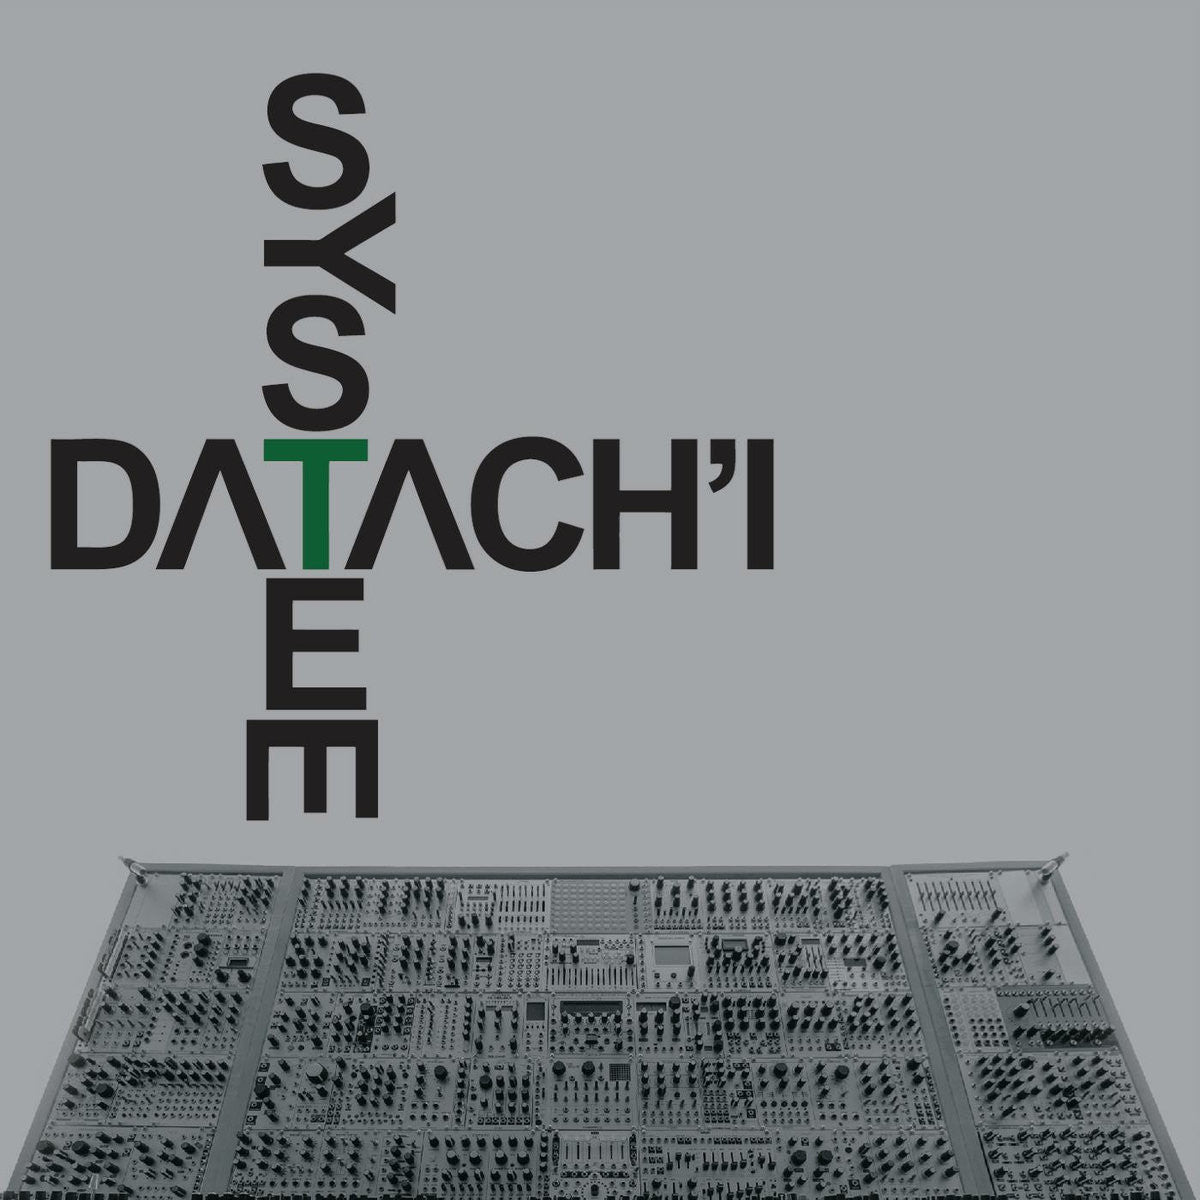 "Datach'I – System [2x12"" LP] , Vinyl - Timesig, Unearthed Sounds"